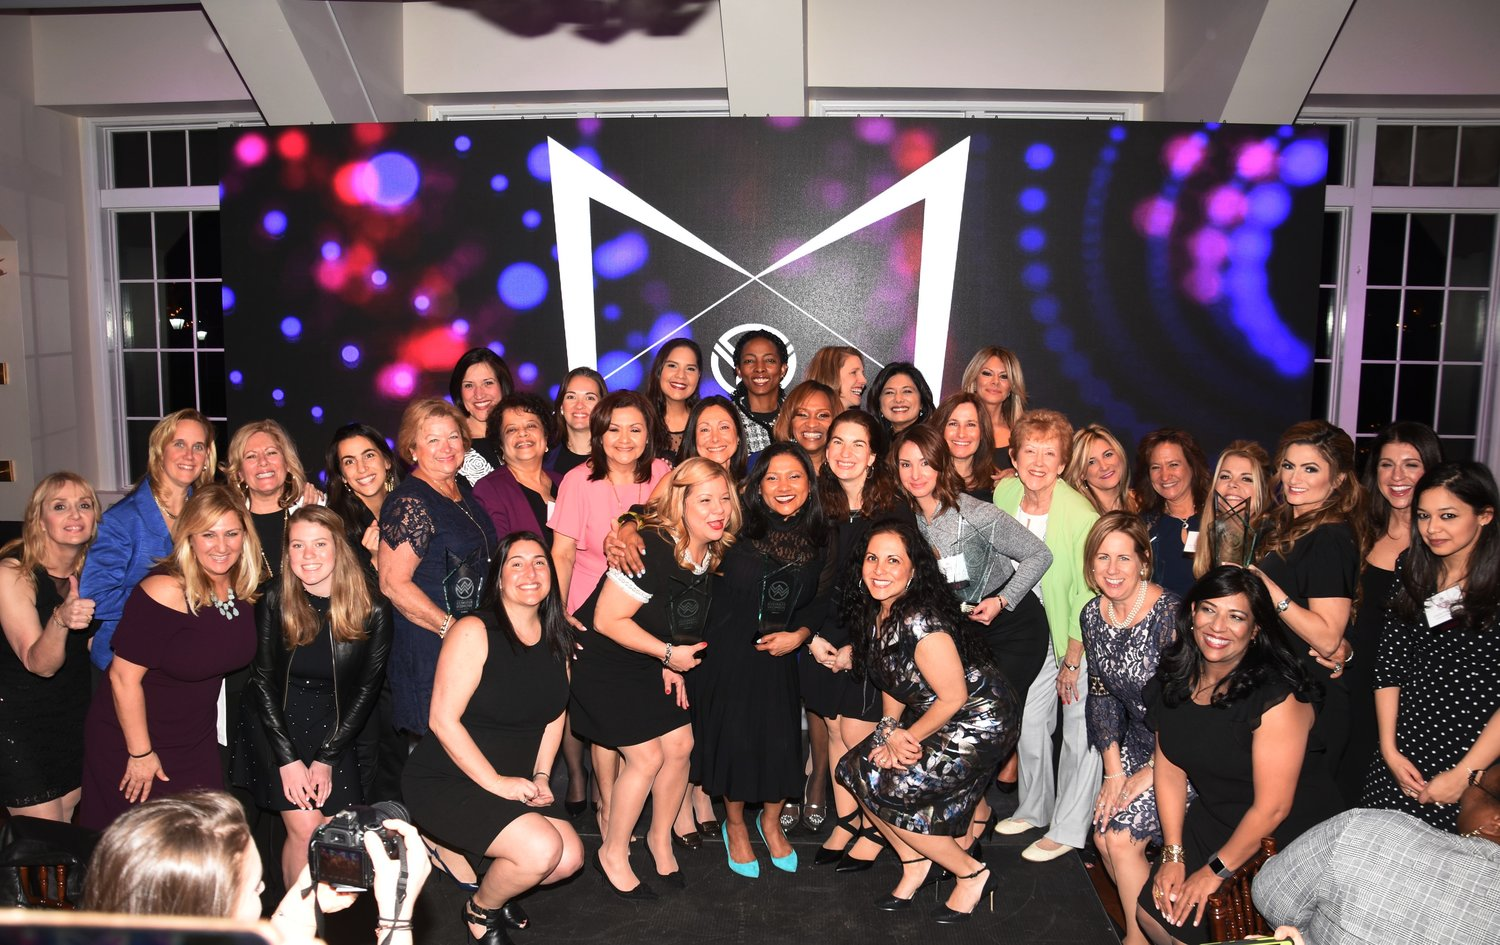 Forty-eight Long Island professionals were honored at the Premier Business Women of Long Island Awards Gala.